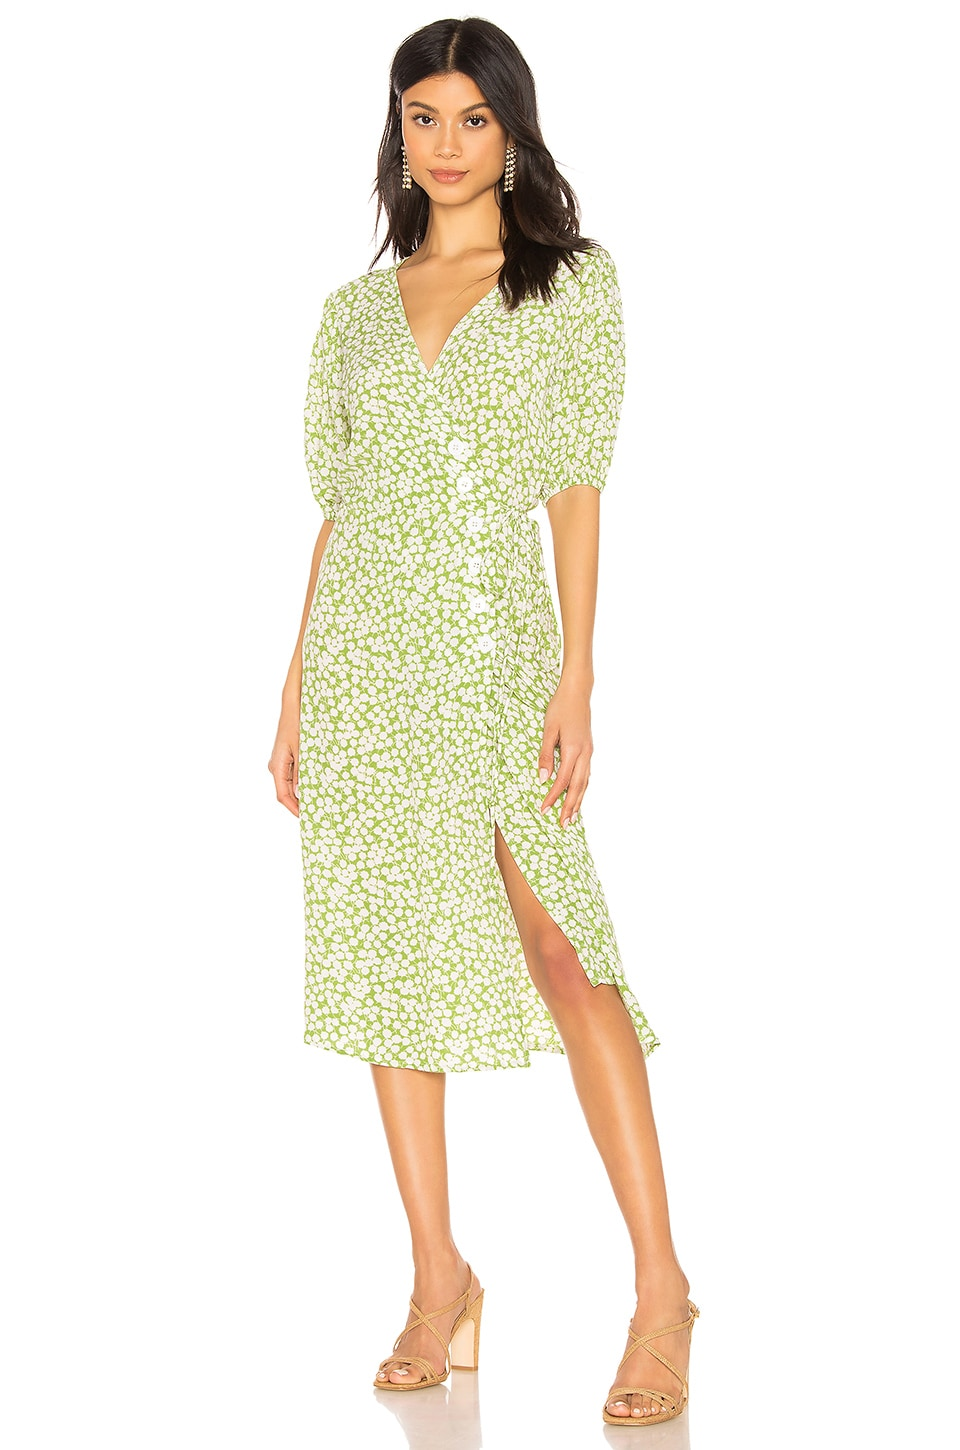 FAITHFULL THE BRAND Marta Dress in Avocado Green Bella Floral